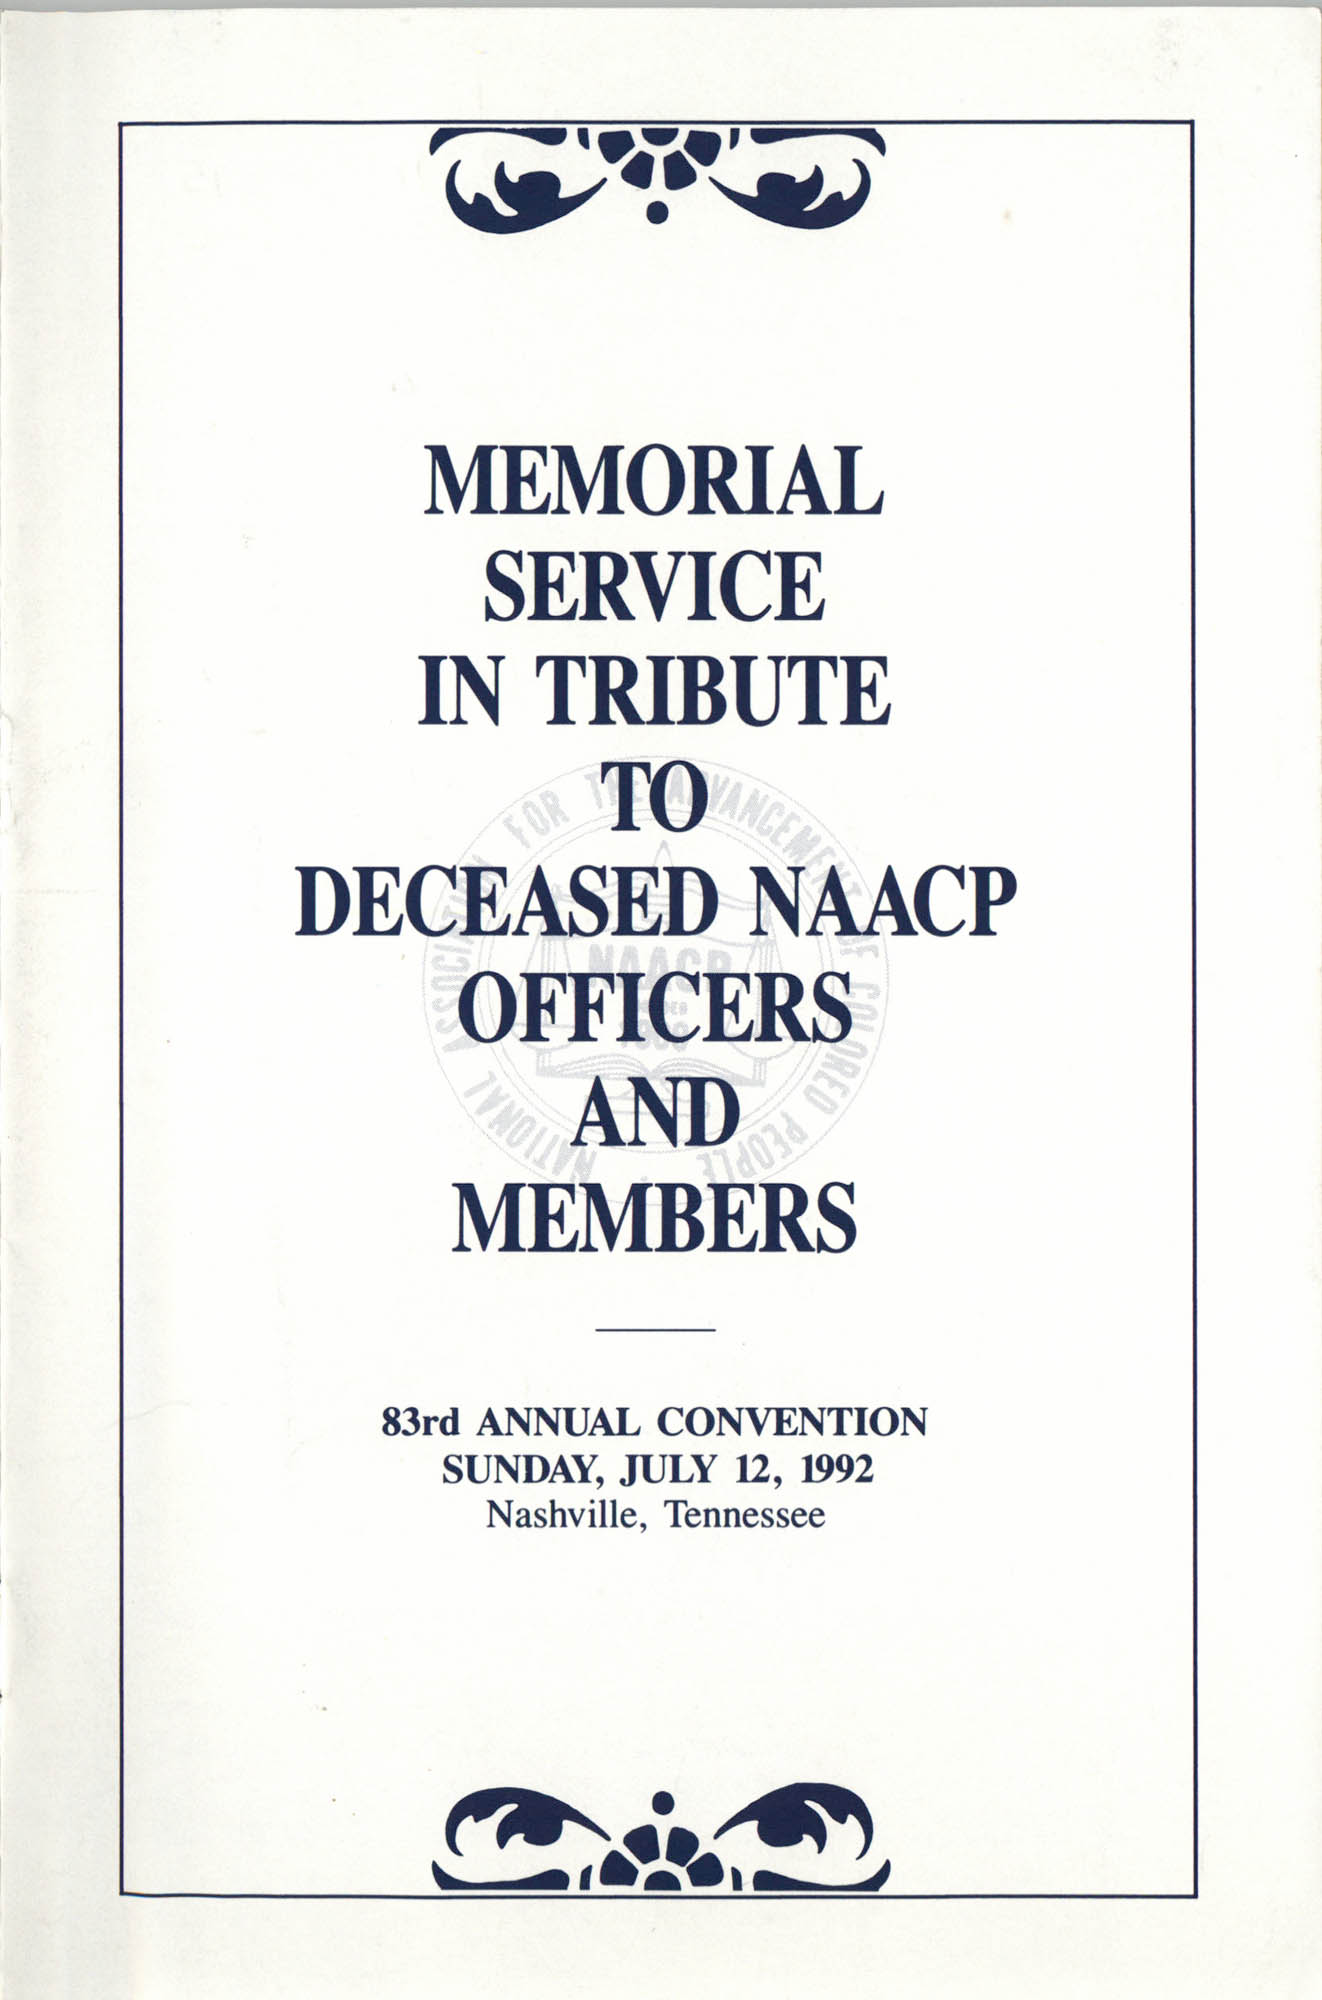 Memorial Service in Tribute to Deceased NAACP Officers and Member, July 12, 1992, Cover